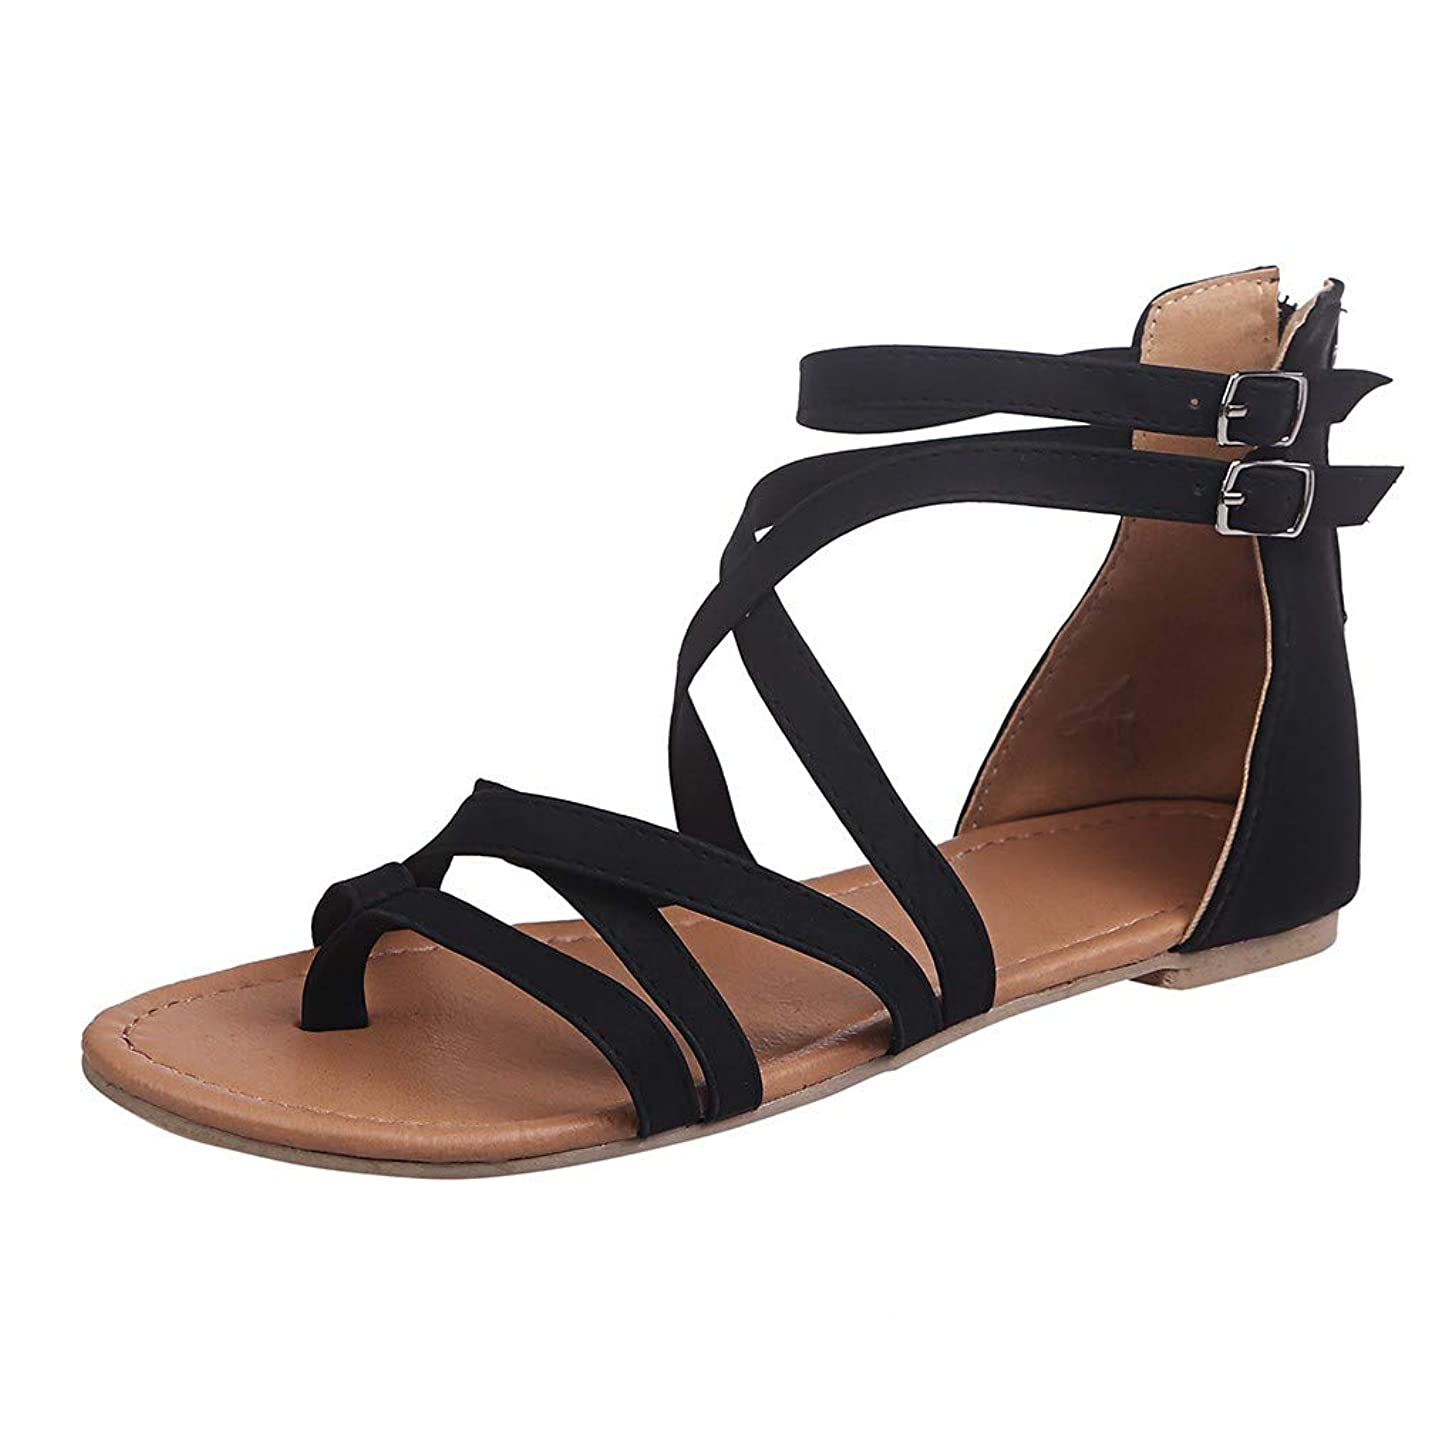 Claystyle Women's Casual Open Toe Strappy Beach Summer Flats Sandals